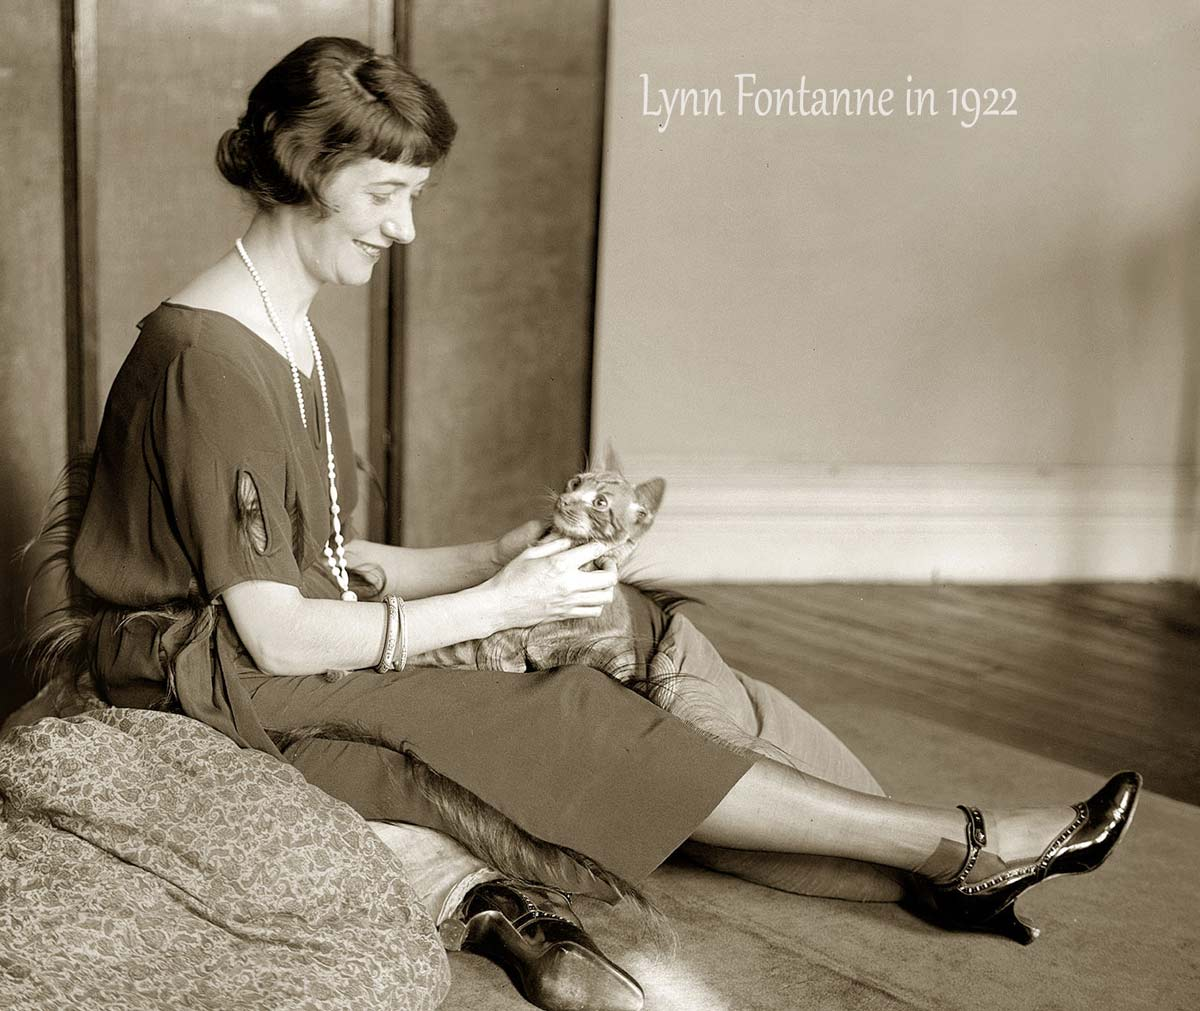 Lynn Fontanne wearing short skirt in 1922